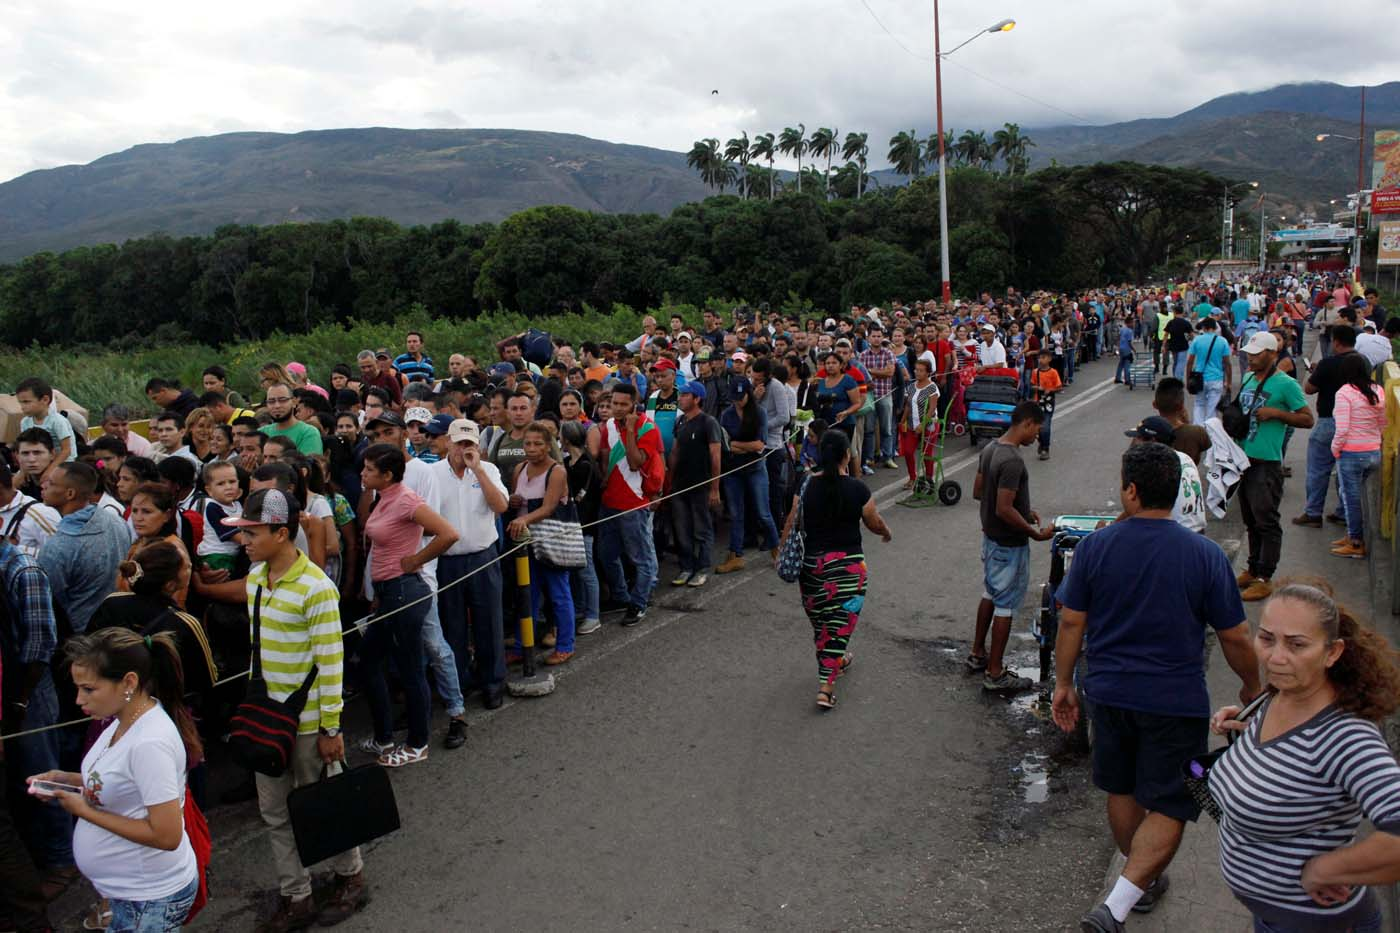 People line up to cross the Simon Bolivar international bridge into Colombia, in San Antonio del Tachira, Venezuela July 25, 2017. REUTERS/Luis Parada